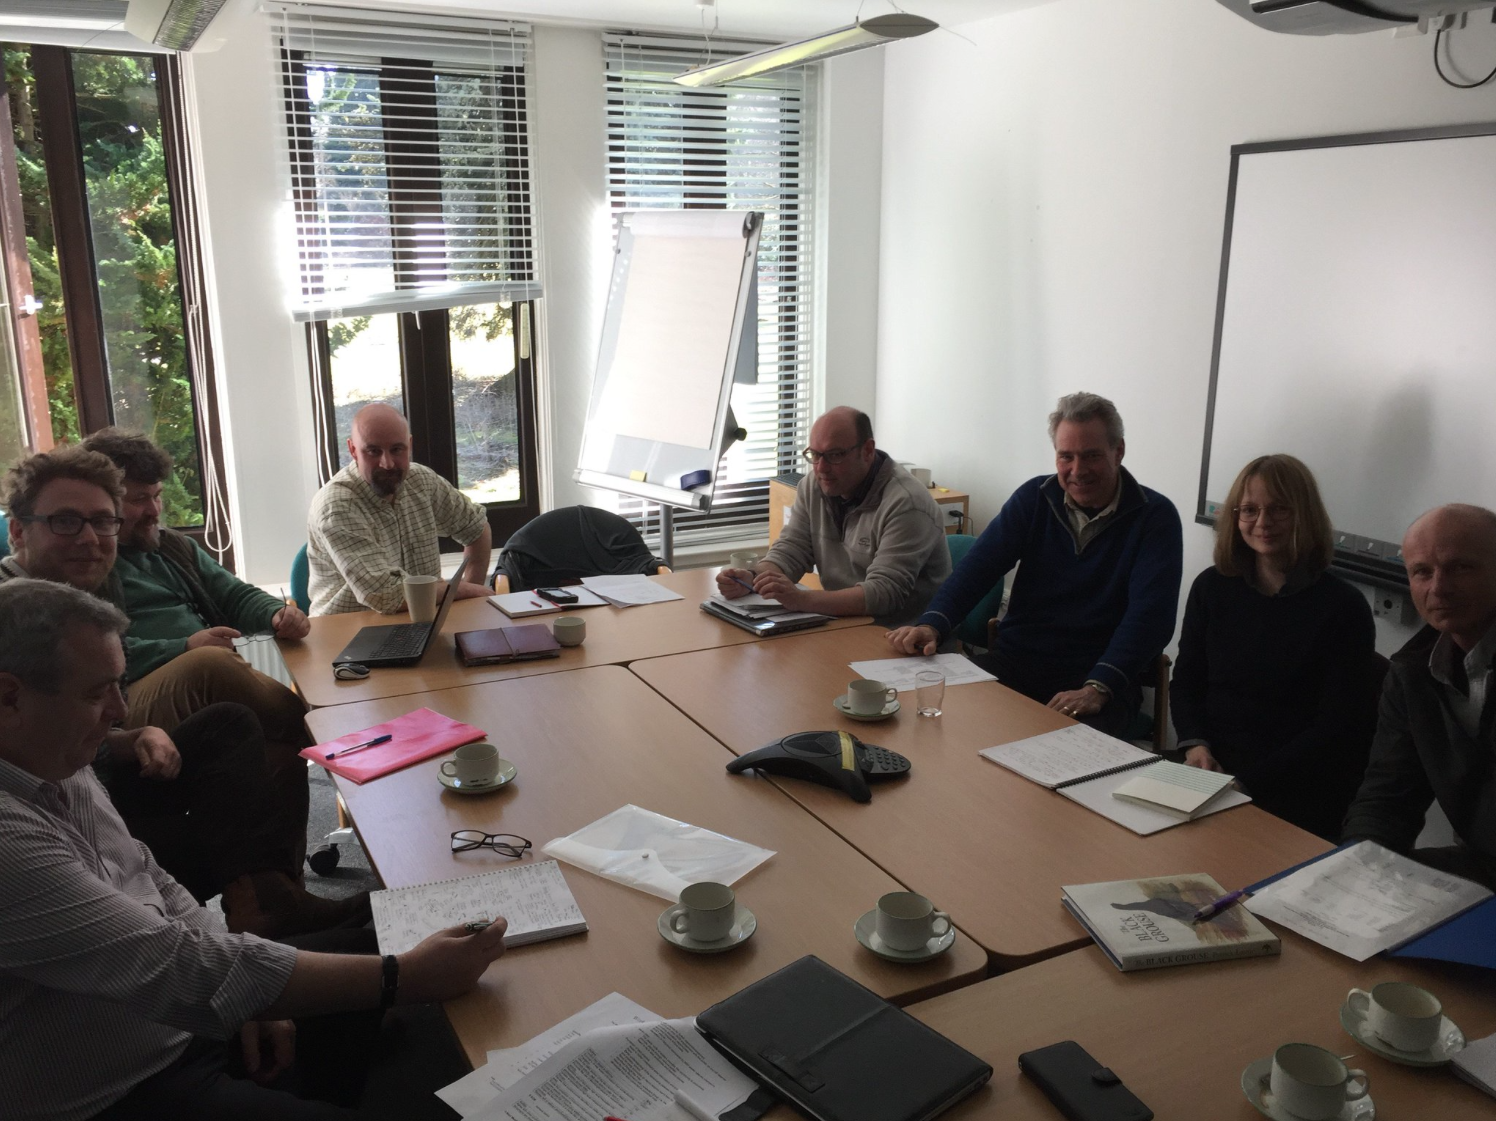 The Raising Awareness and Developing Best Practice Group meeting at Battleby